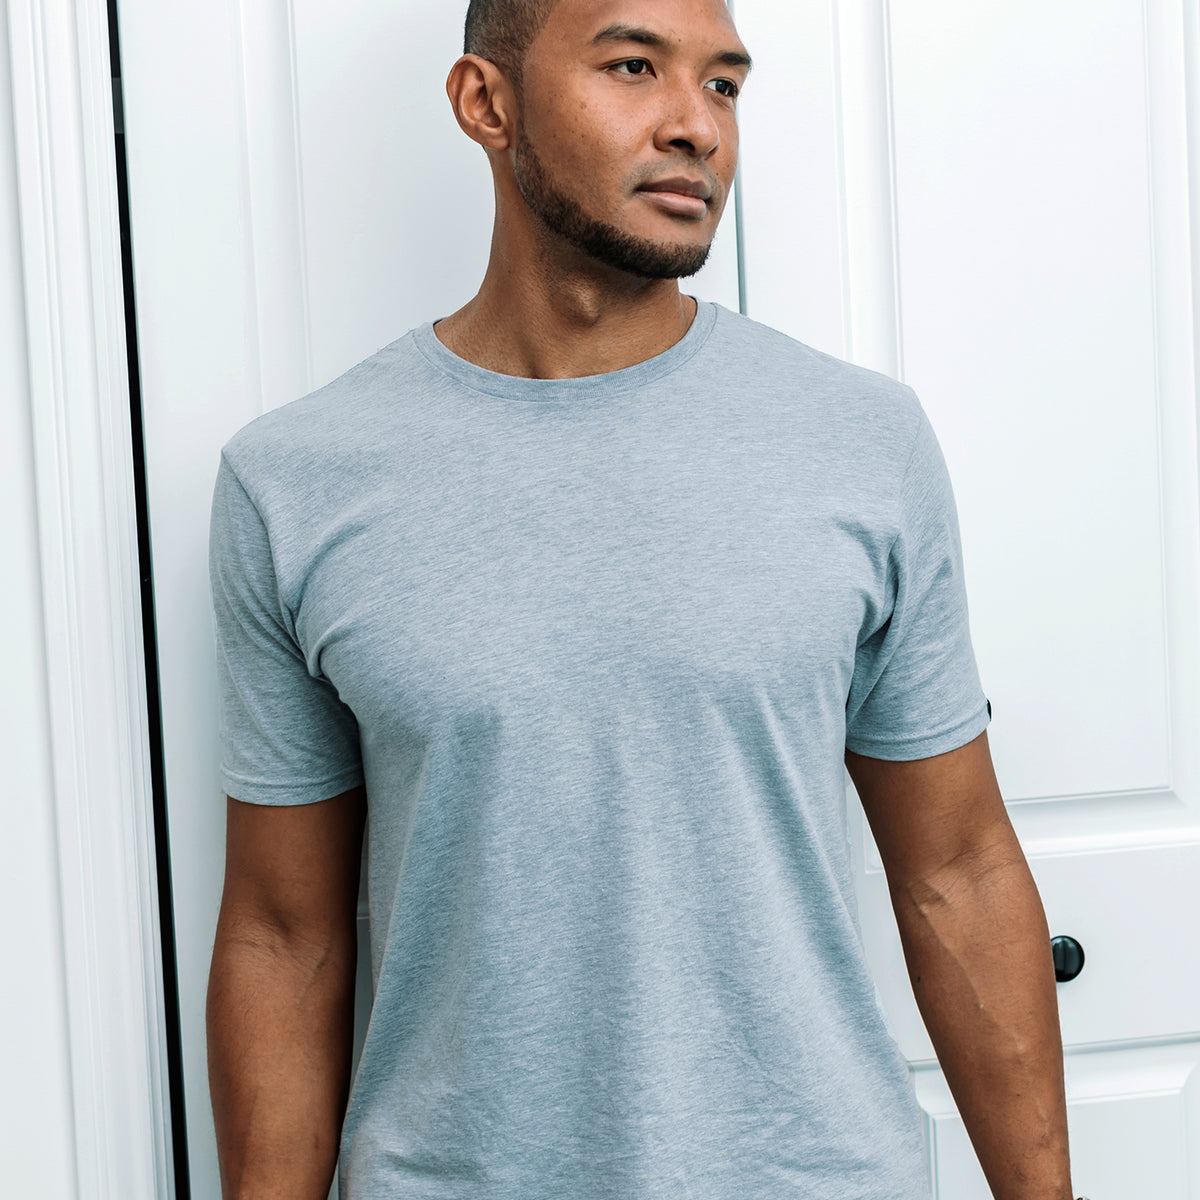 Thomas Tall Tee - Grey